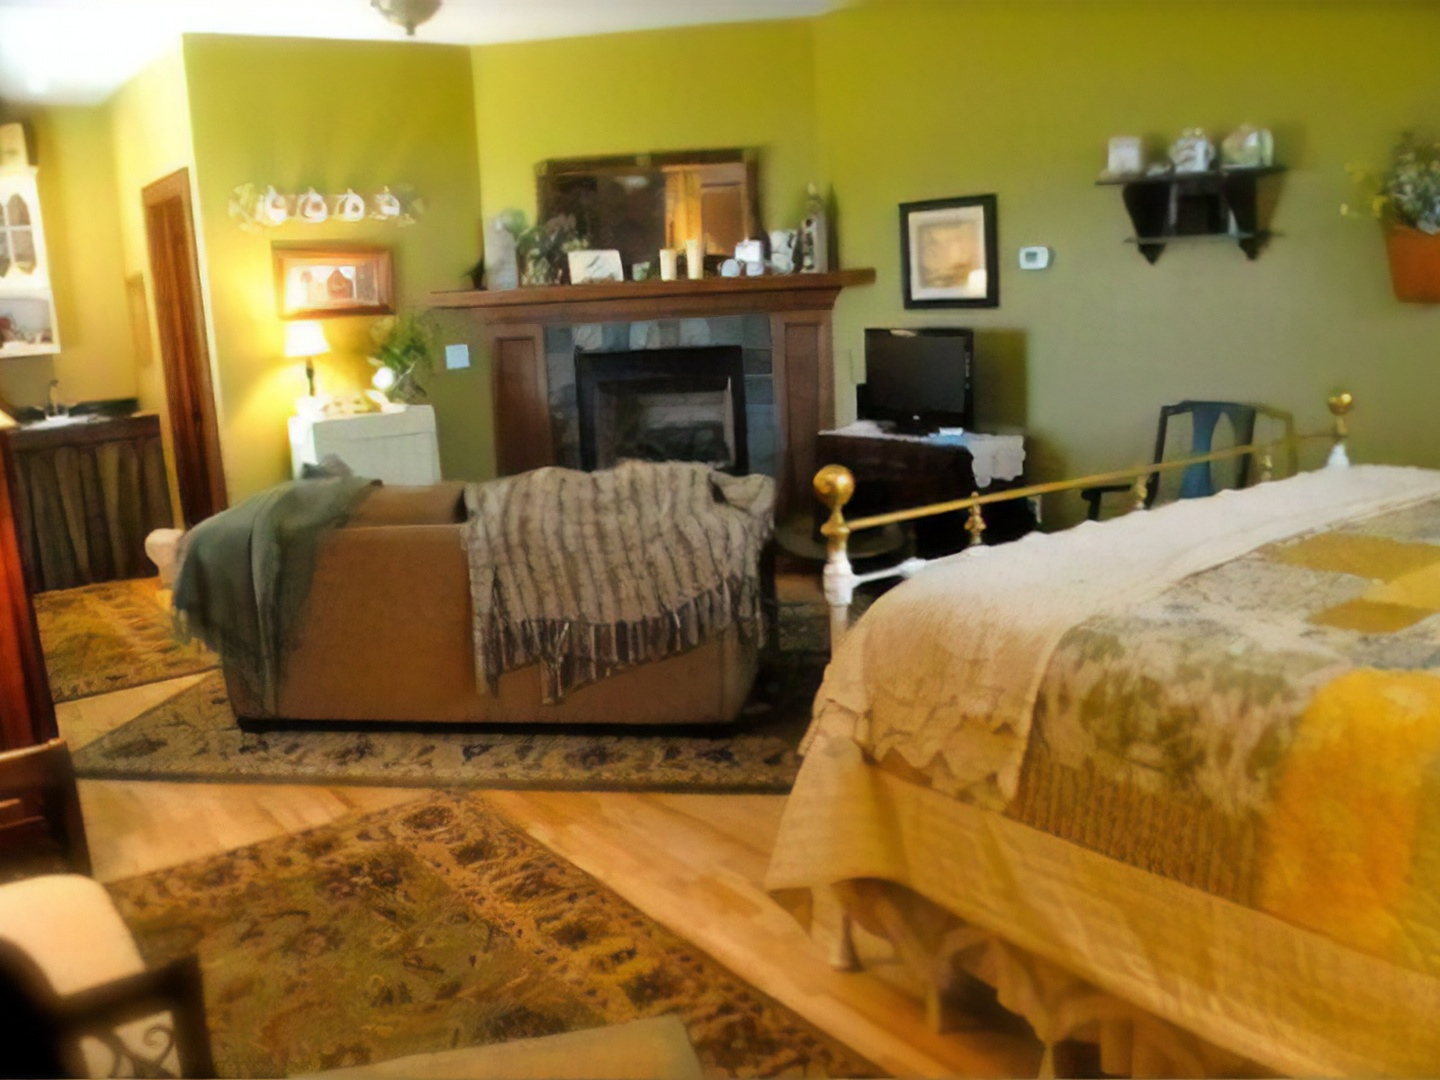 A bedroom with a bed in a hotel room at Longview Farms Bed & Breakfast Carriage House.